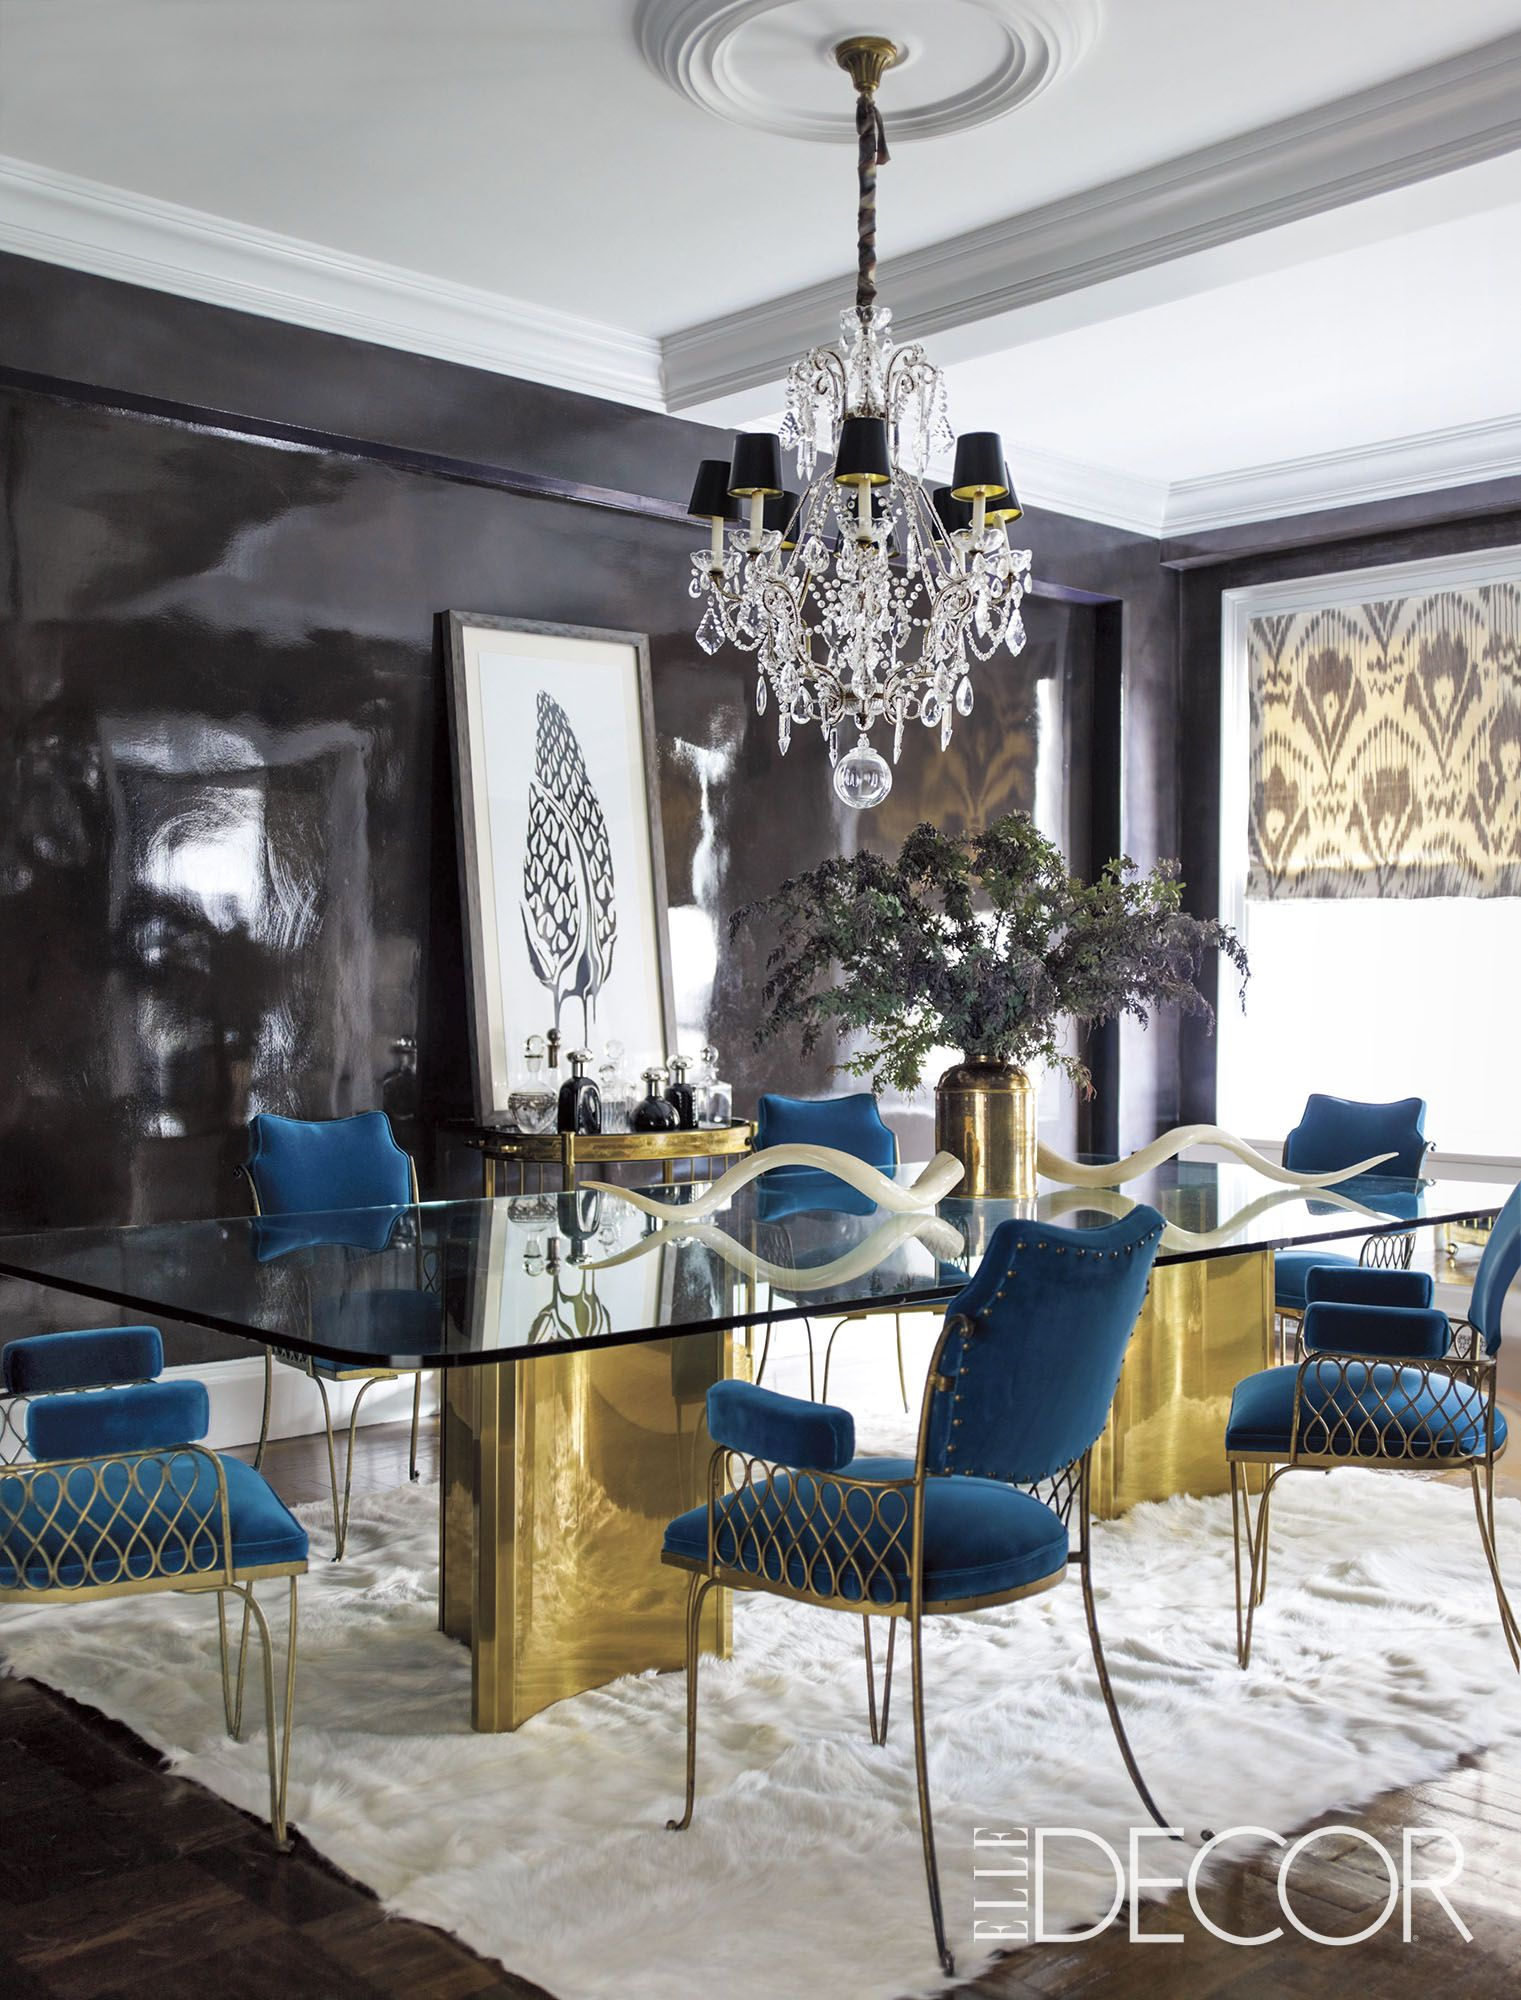 Dining Room Chandeliers Enhancing The Appearance Of The Space